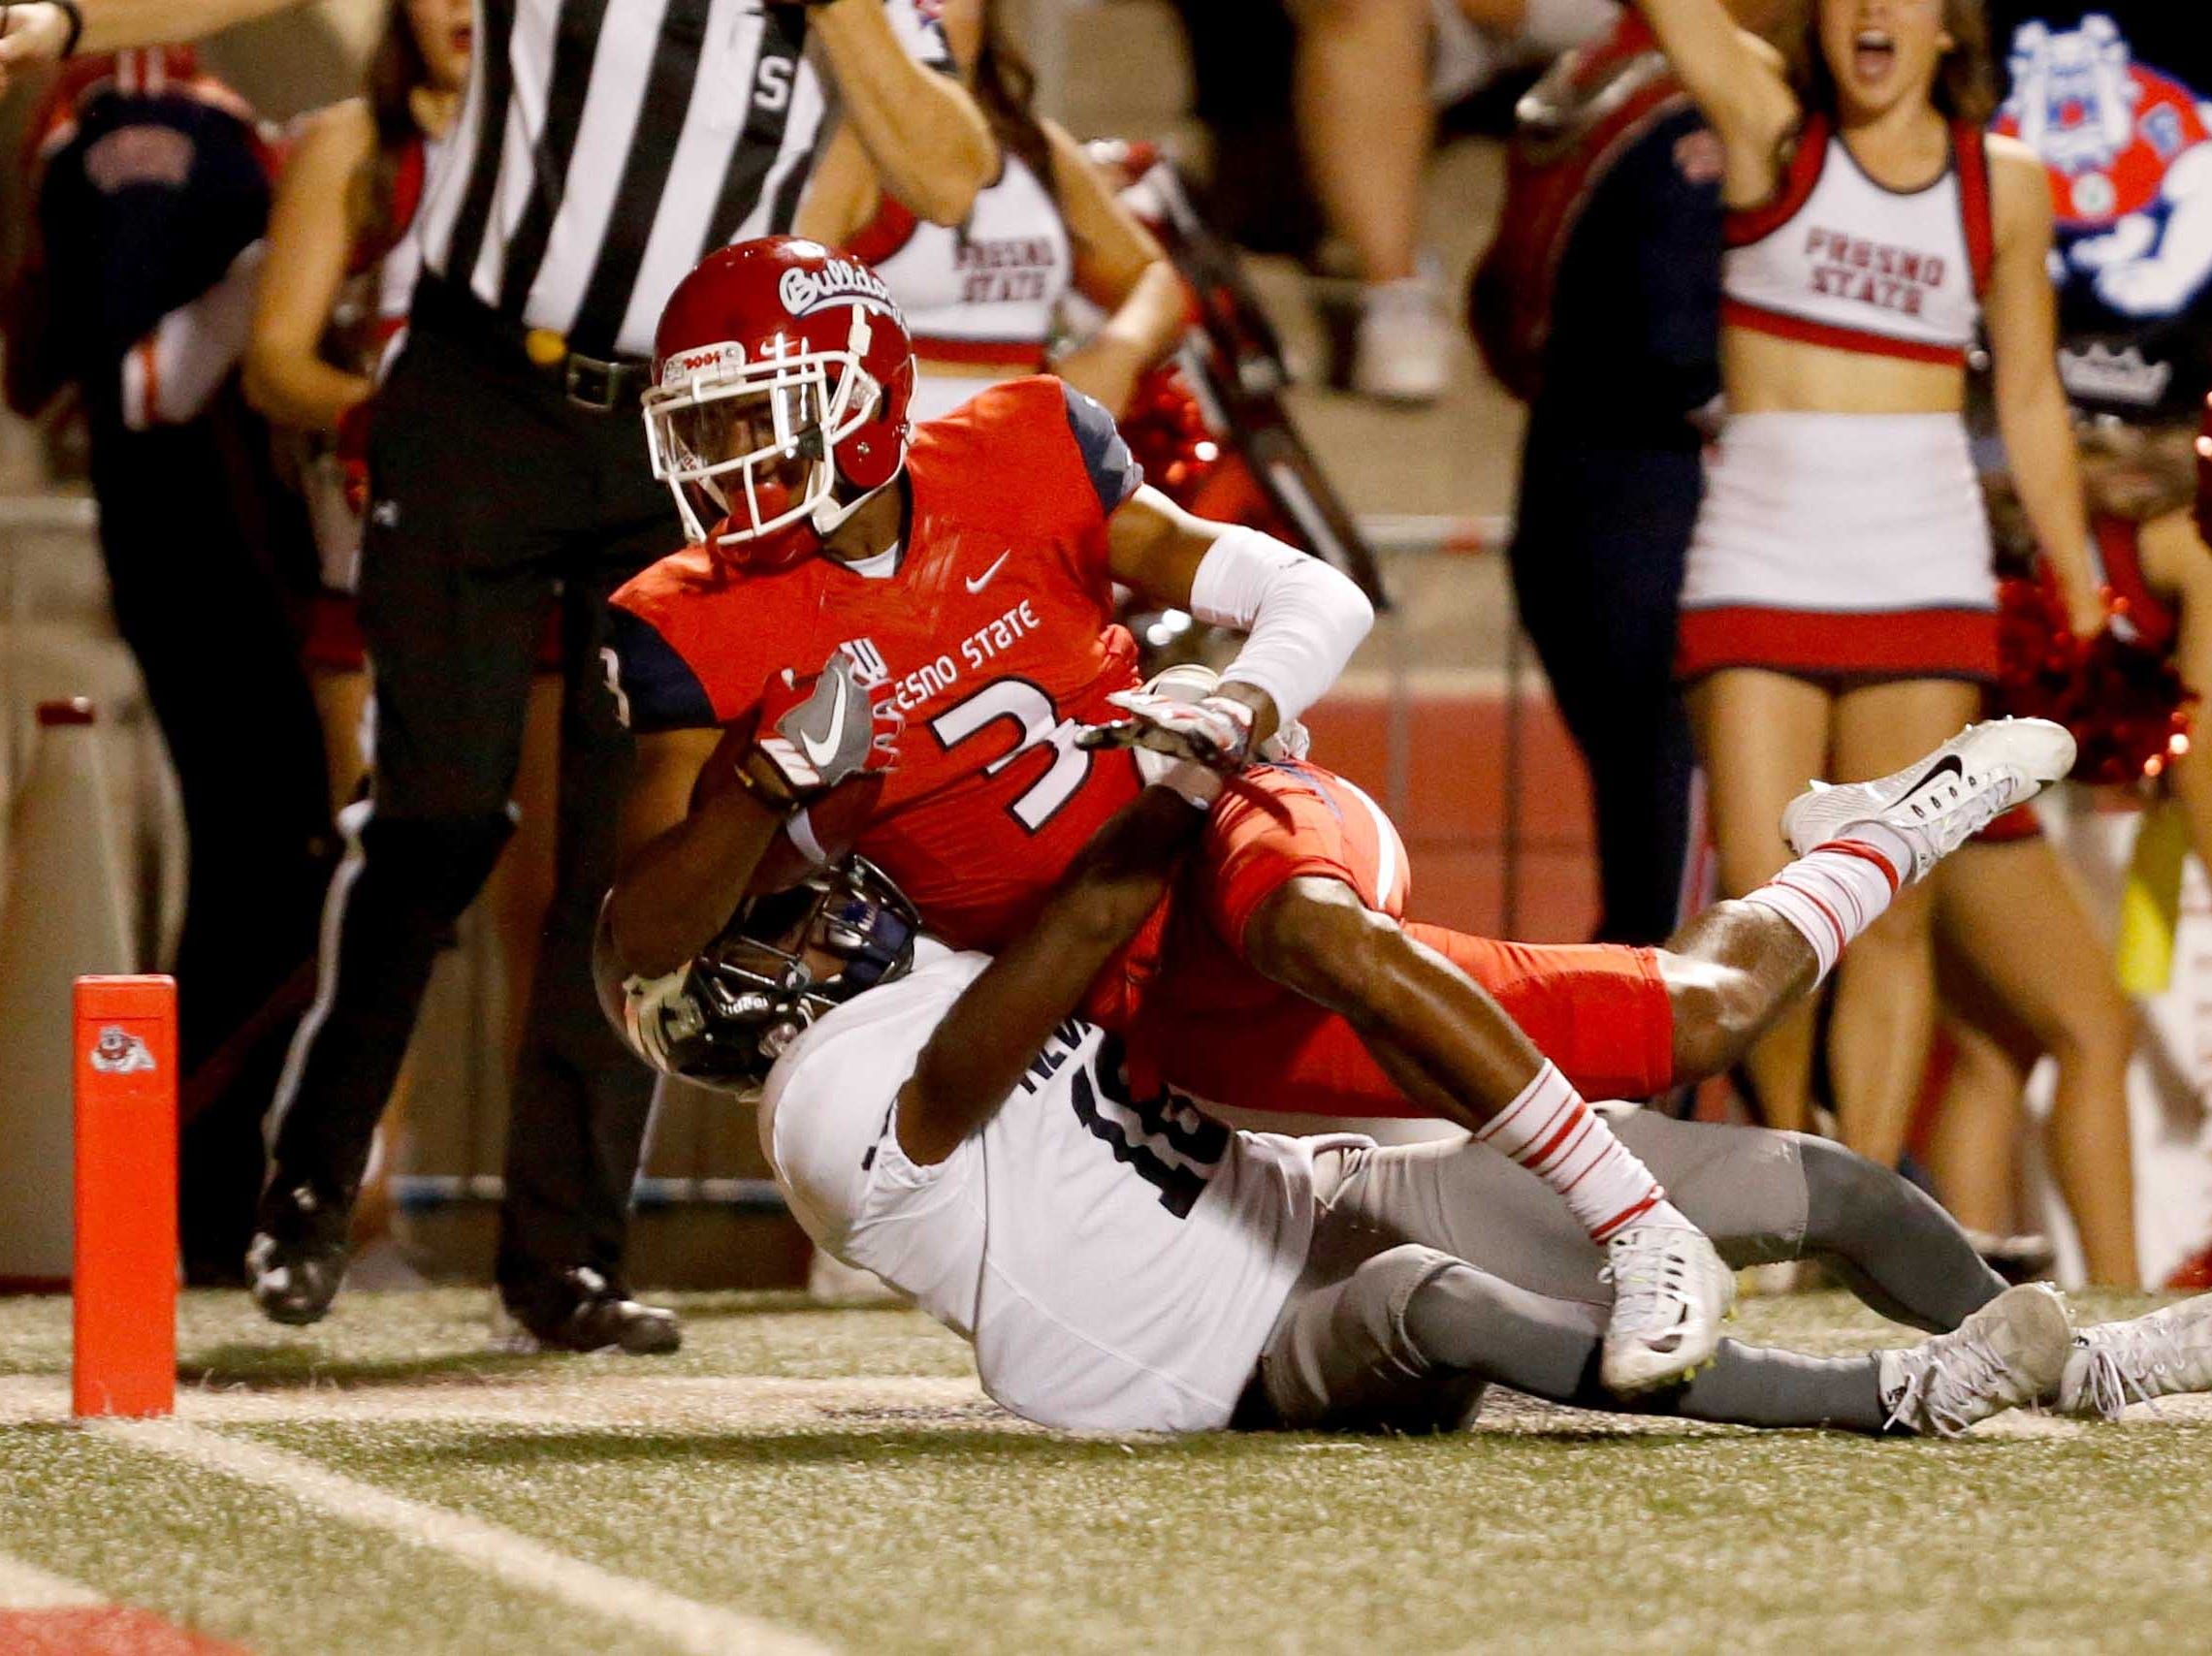 Fresno State receiver KeeSean Johnson (3) falls over Nevada defensive back Elijah Moody (18) for a touchdown during a game at Bulldog Stadium.